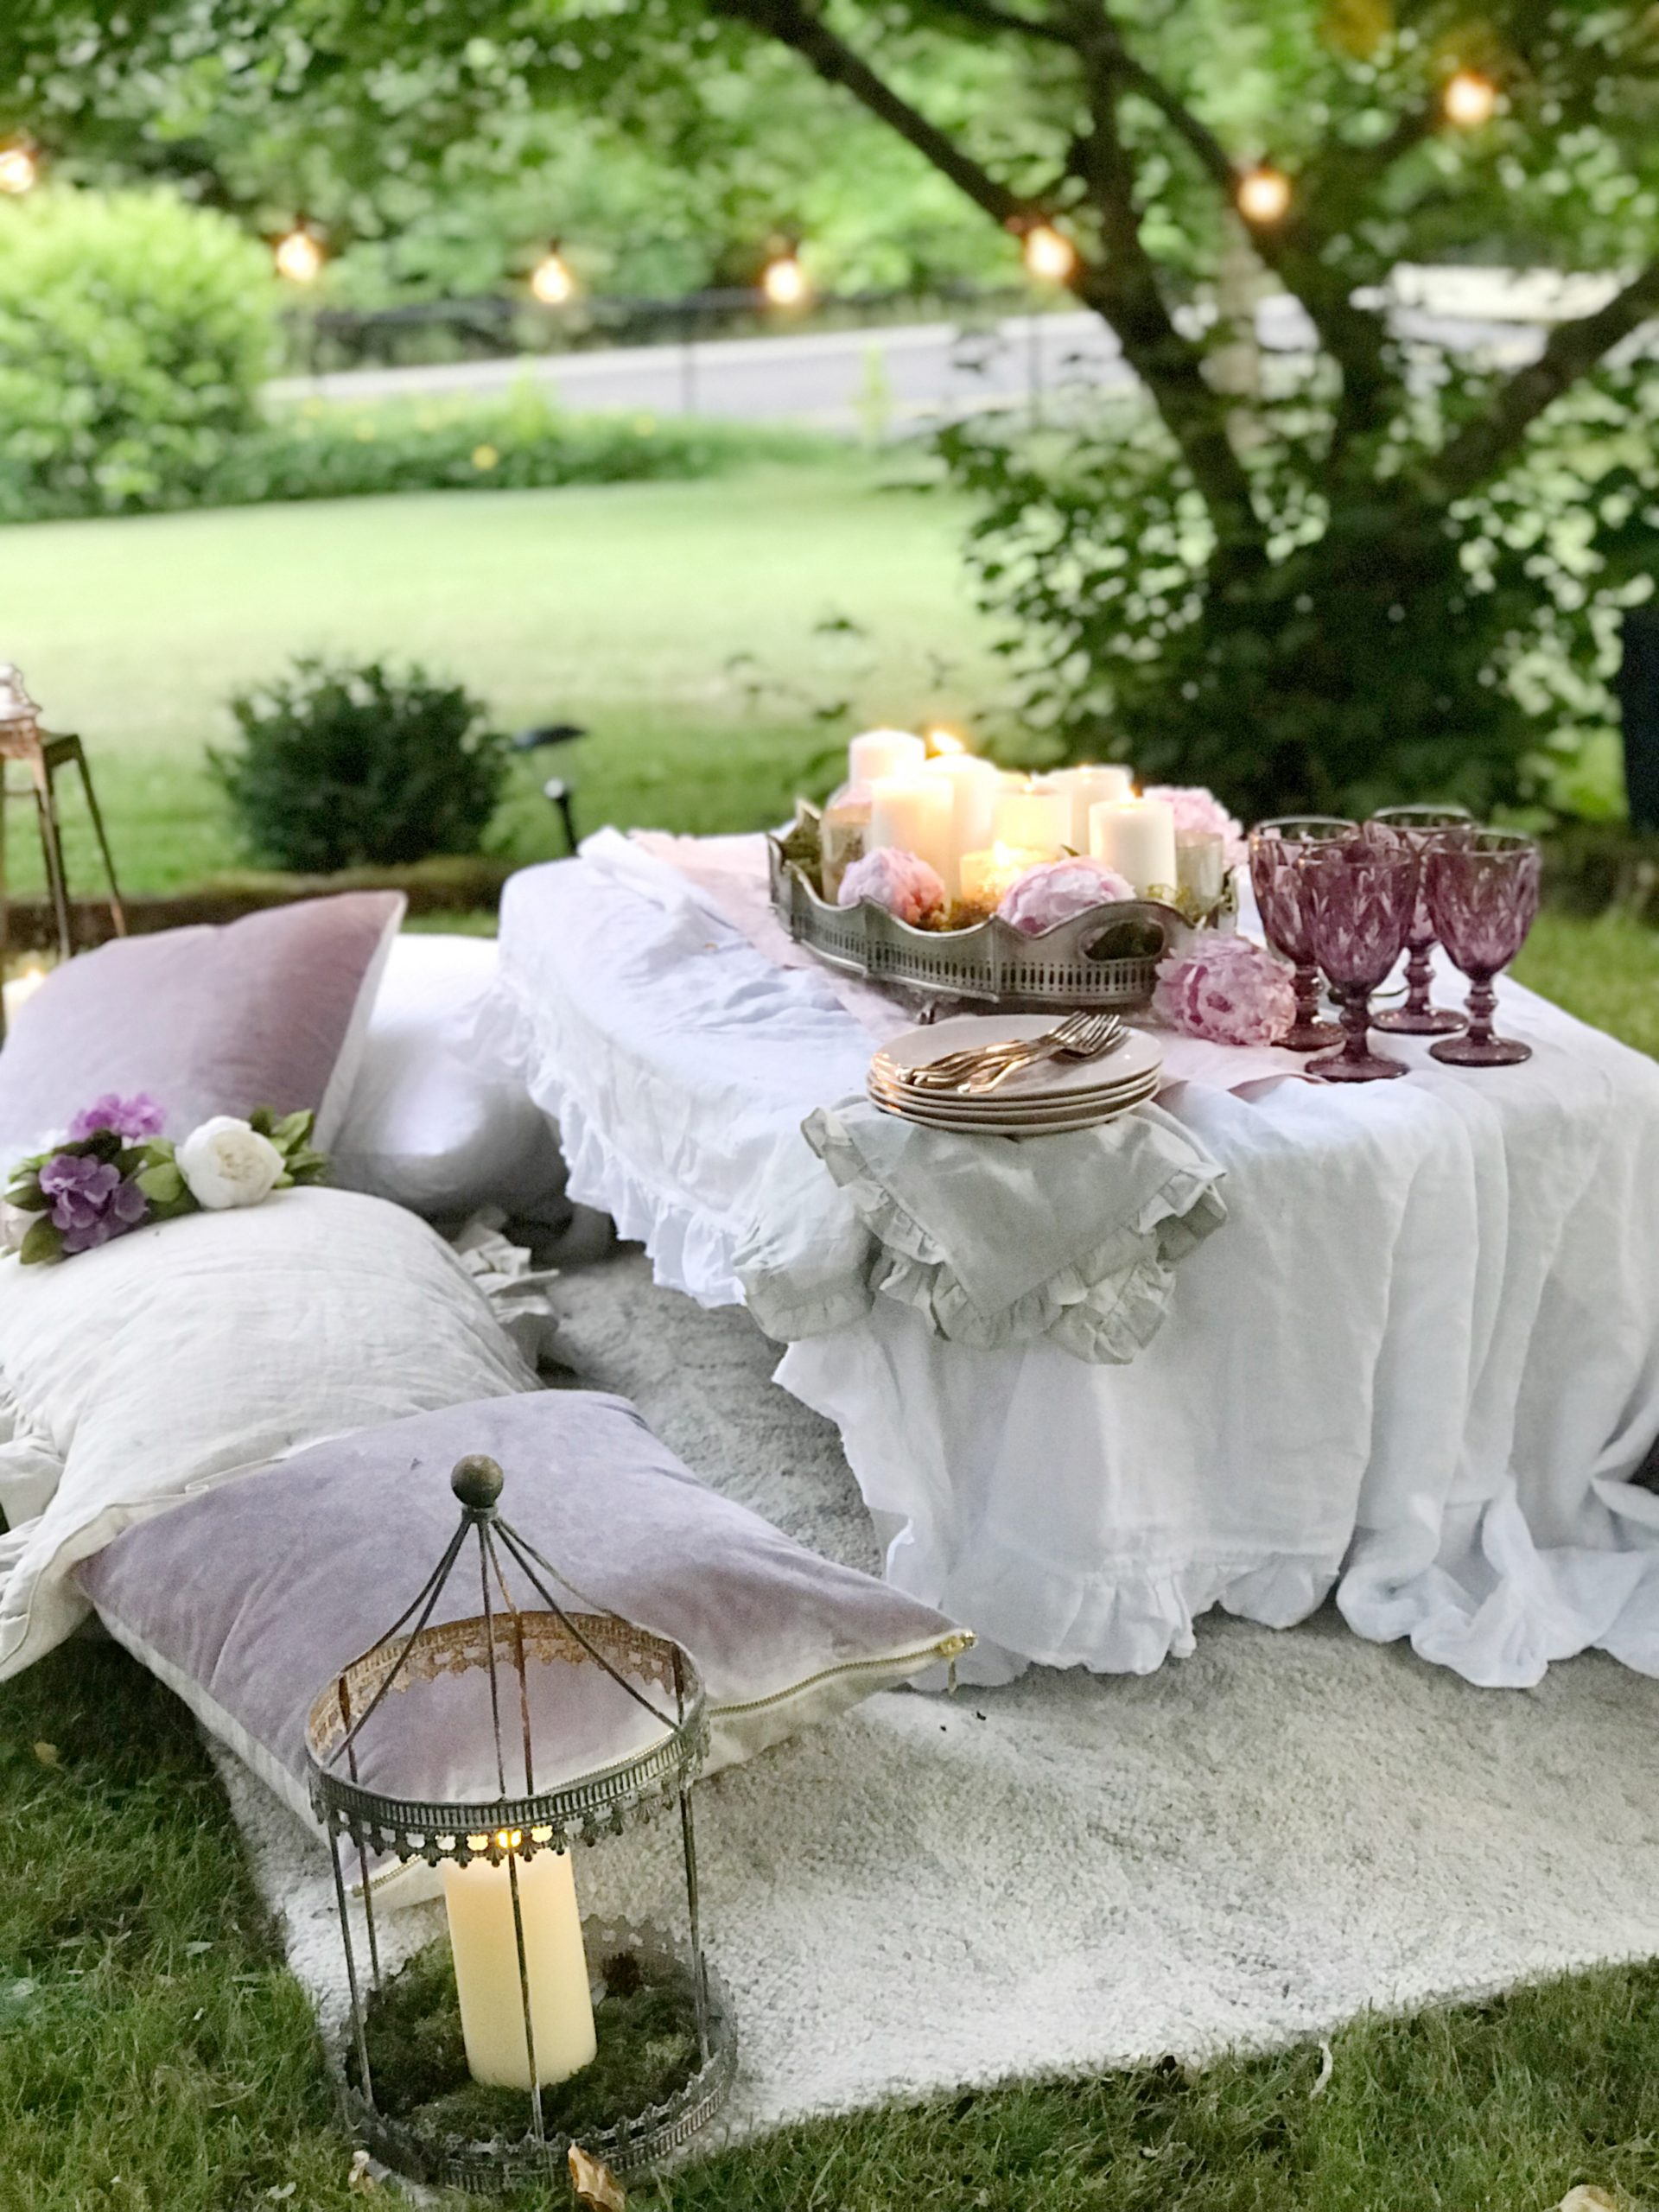 Make Your Outdoor Shabby Chic Wedding Extra Special